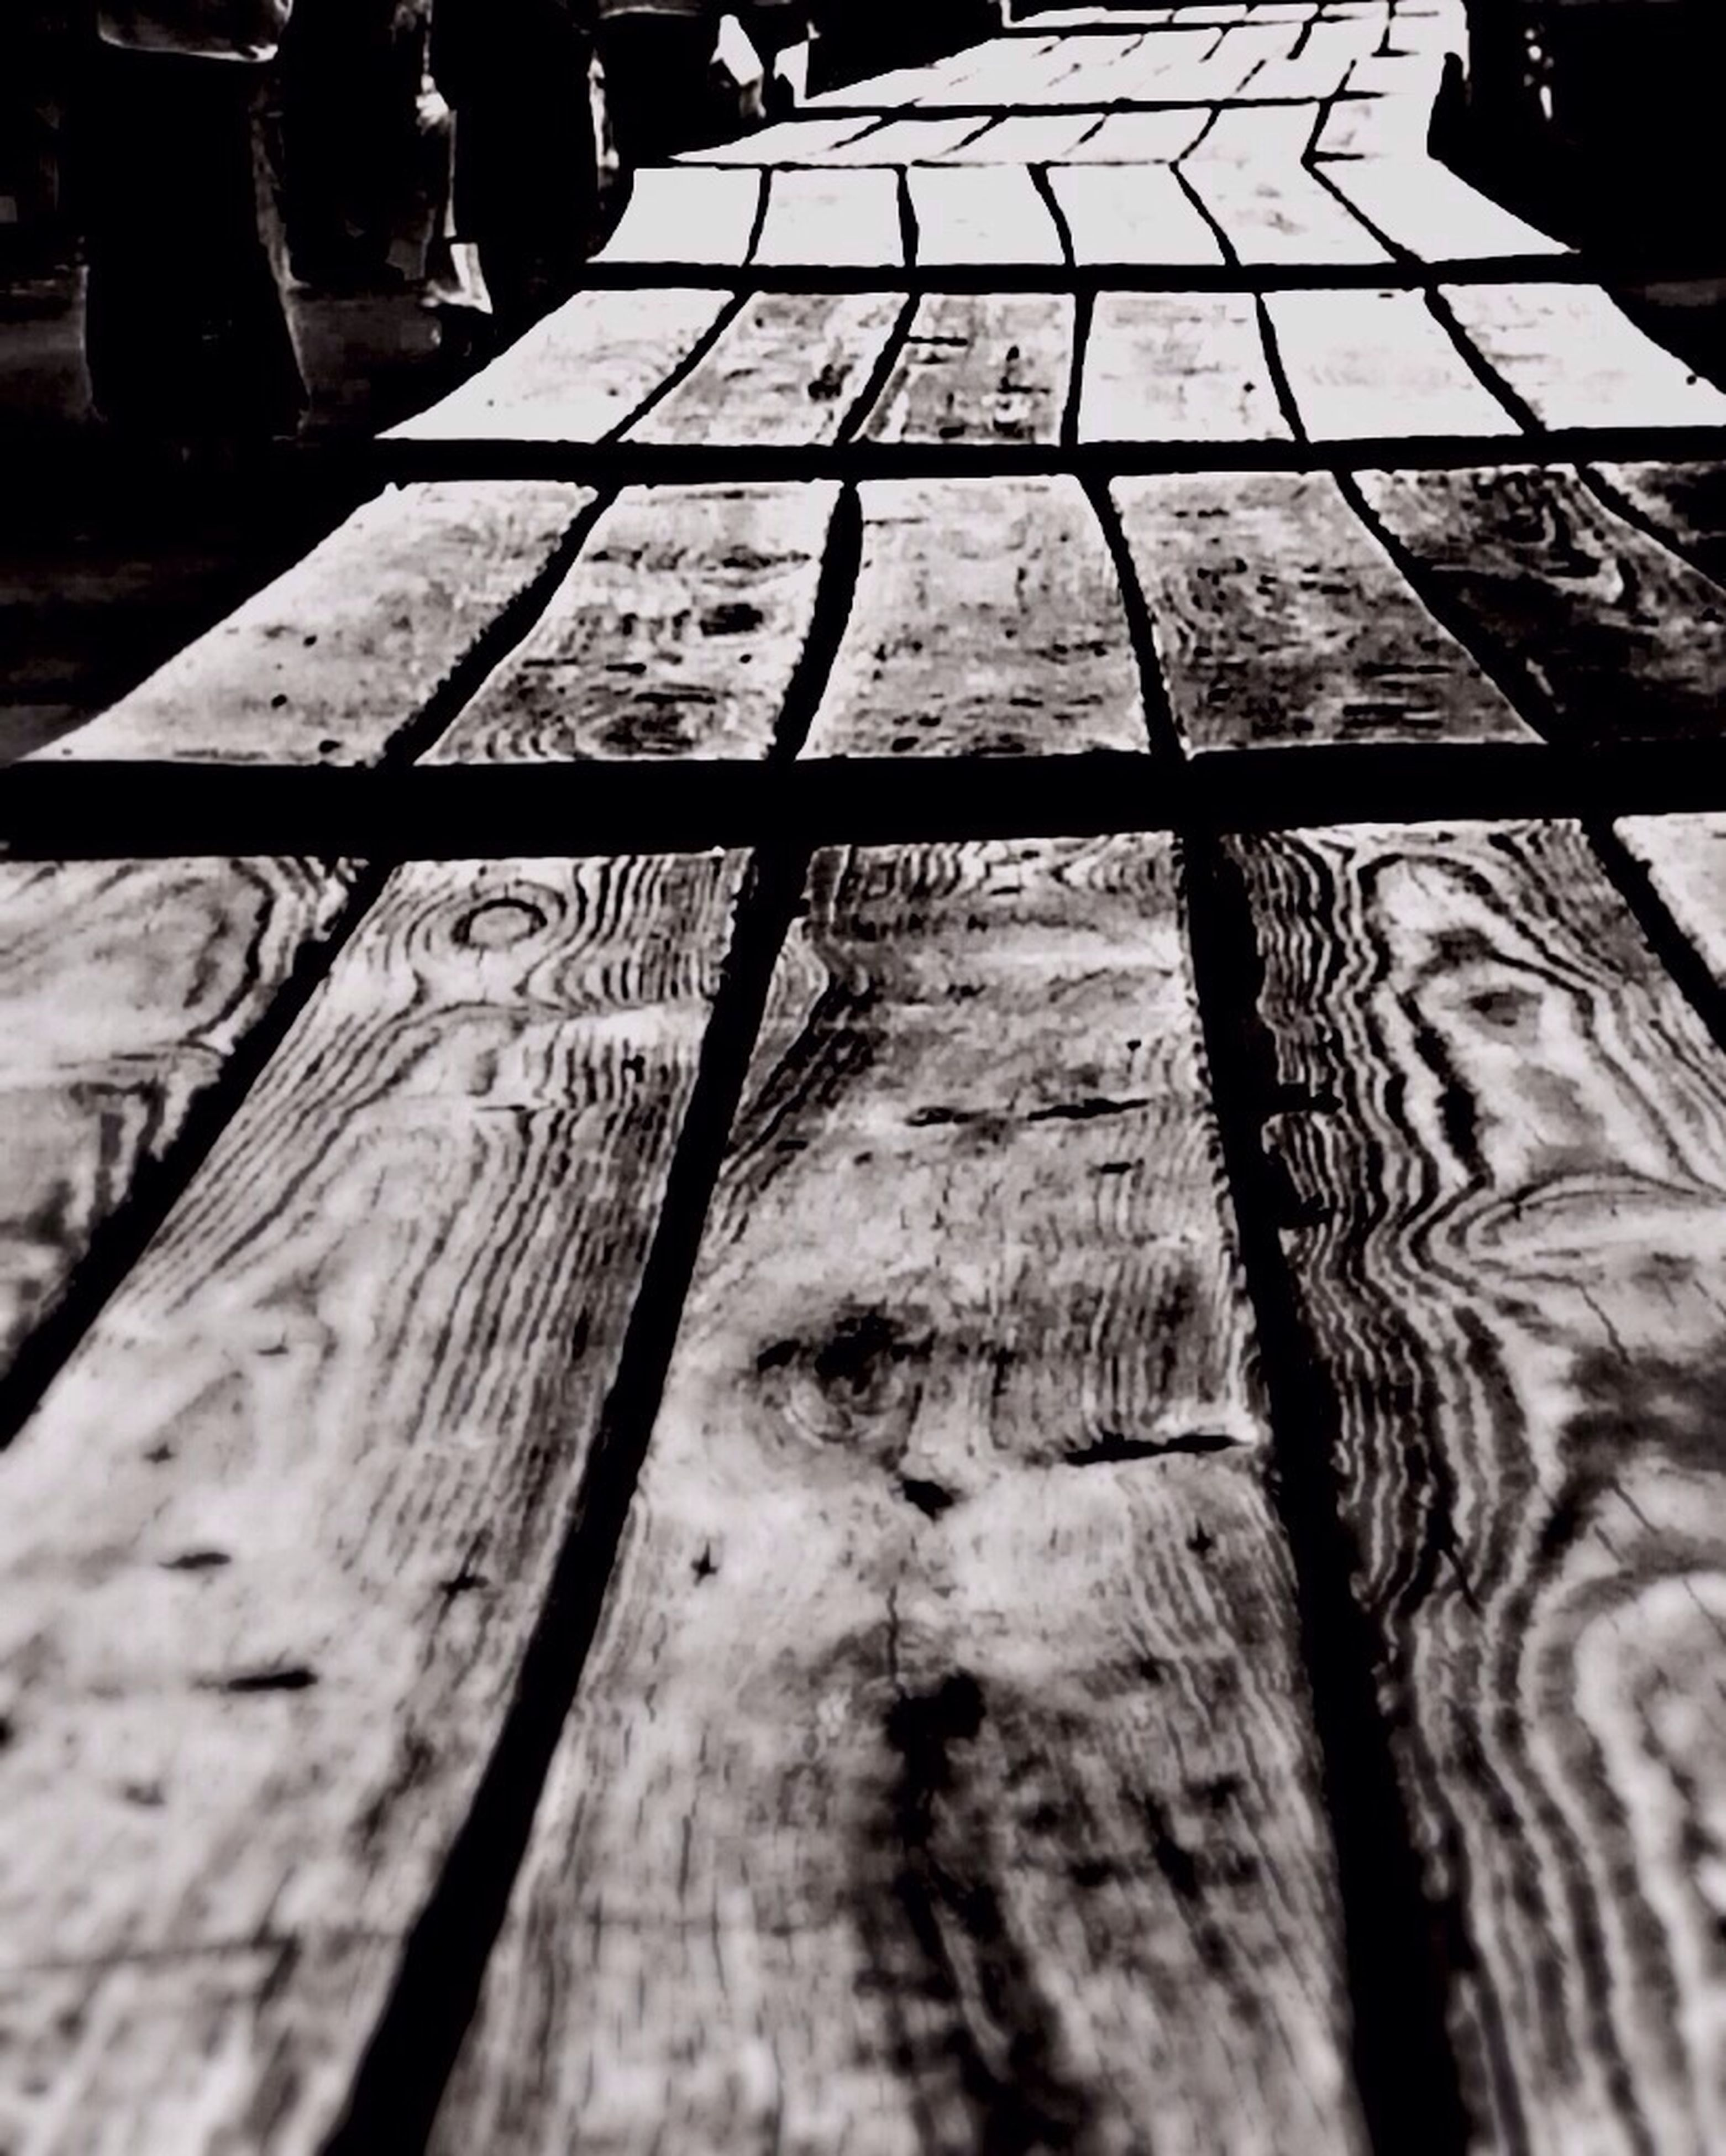 wood - material, wooden, textured, pattern, plank, selective focus, wood, steps, close-up, surface level, boardwalk, the way forward, shadow, steps and staircases, sunlight, indoors, railing, diminishing perspective, high angle view, no people